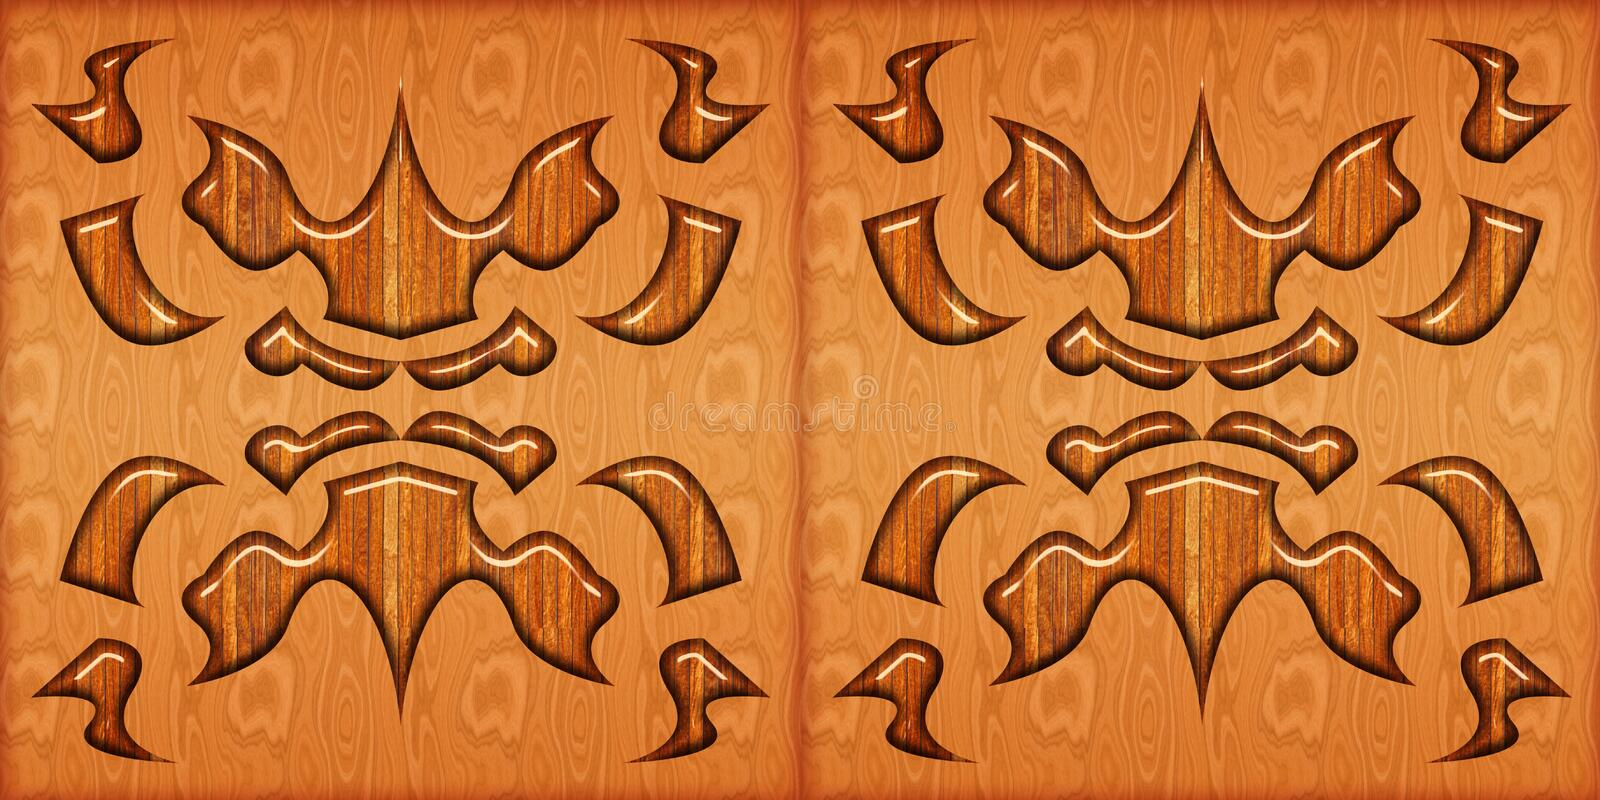 Abstract home decorative art oil paint wall tiles pattern design background. Wooden tile pattern.. Abstract home decorative art oil paint wall tiles pattern royalty free illustration